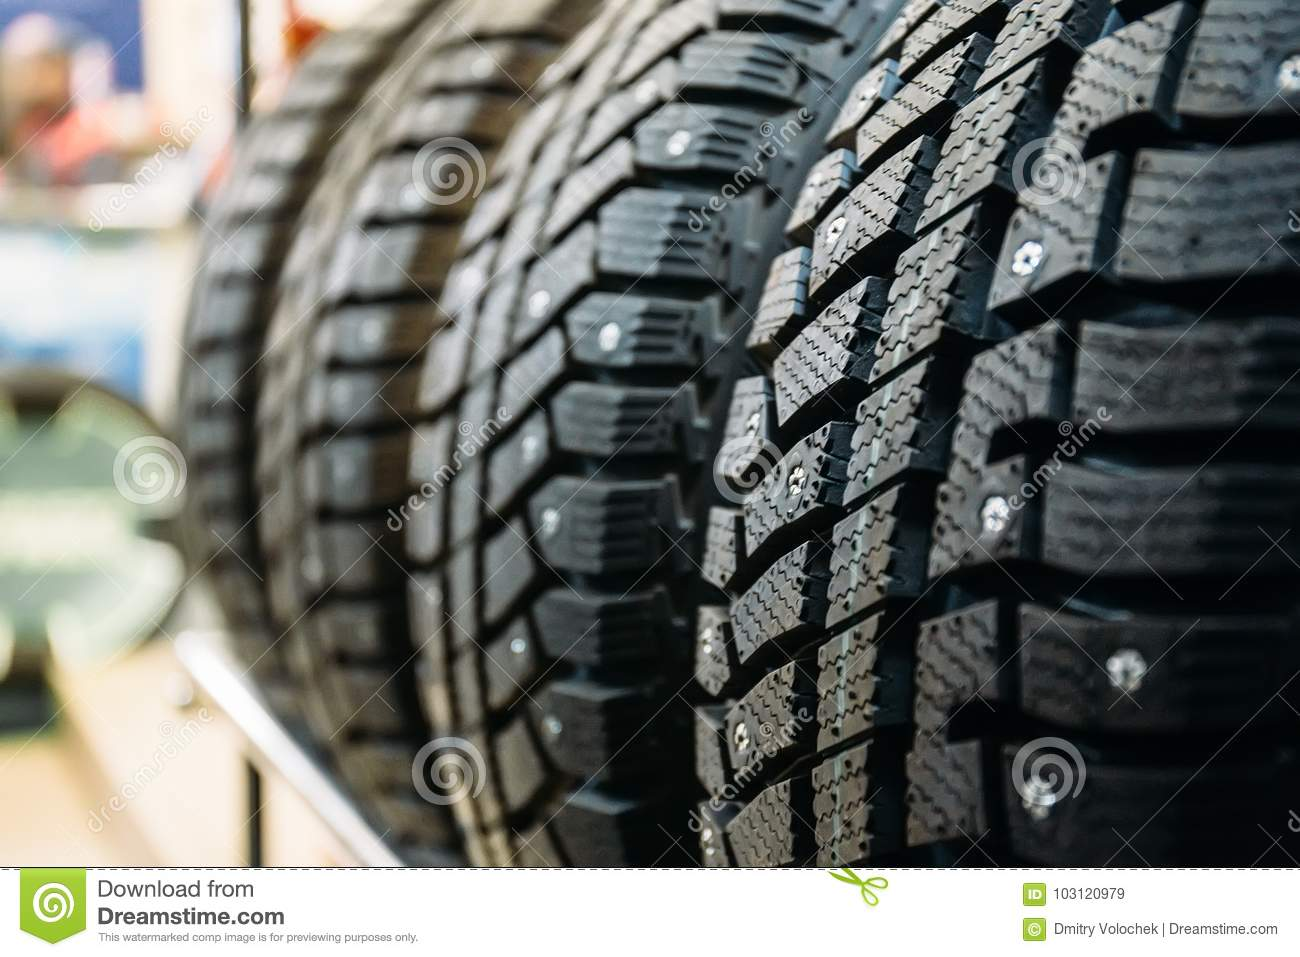 Winter Tires For Sale >> New Winter Tires For Sale In Store Stock Image Image Of